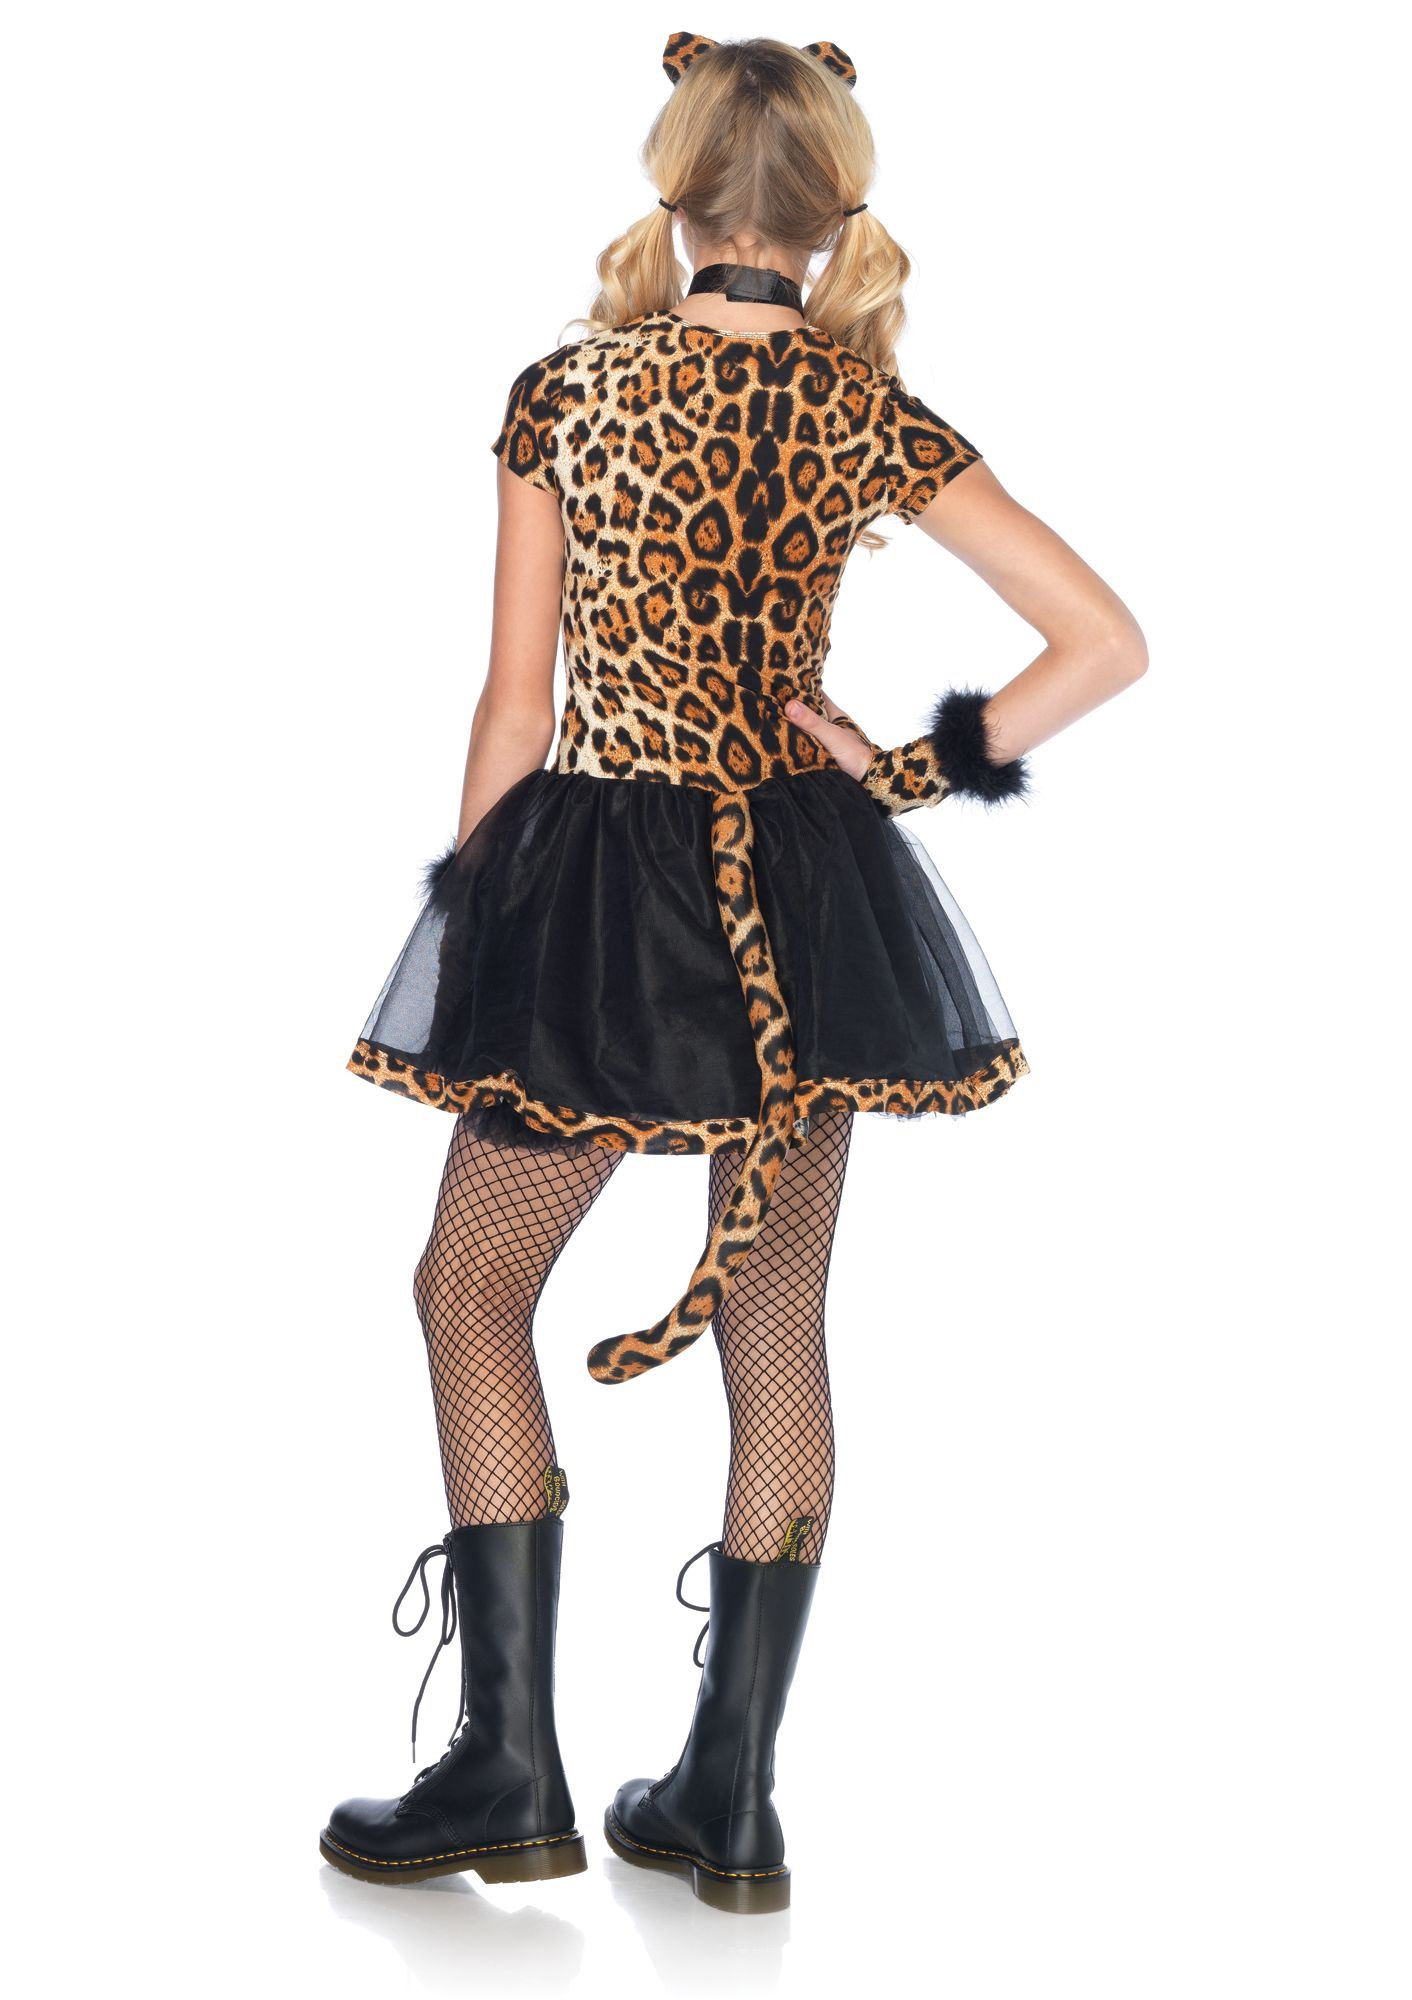 Adult Wicked Wildcat Girls Costume | $24.99 | The Costume Land